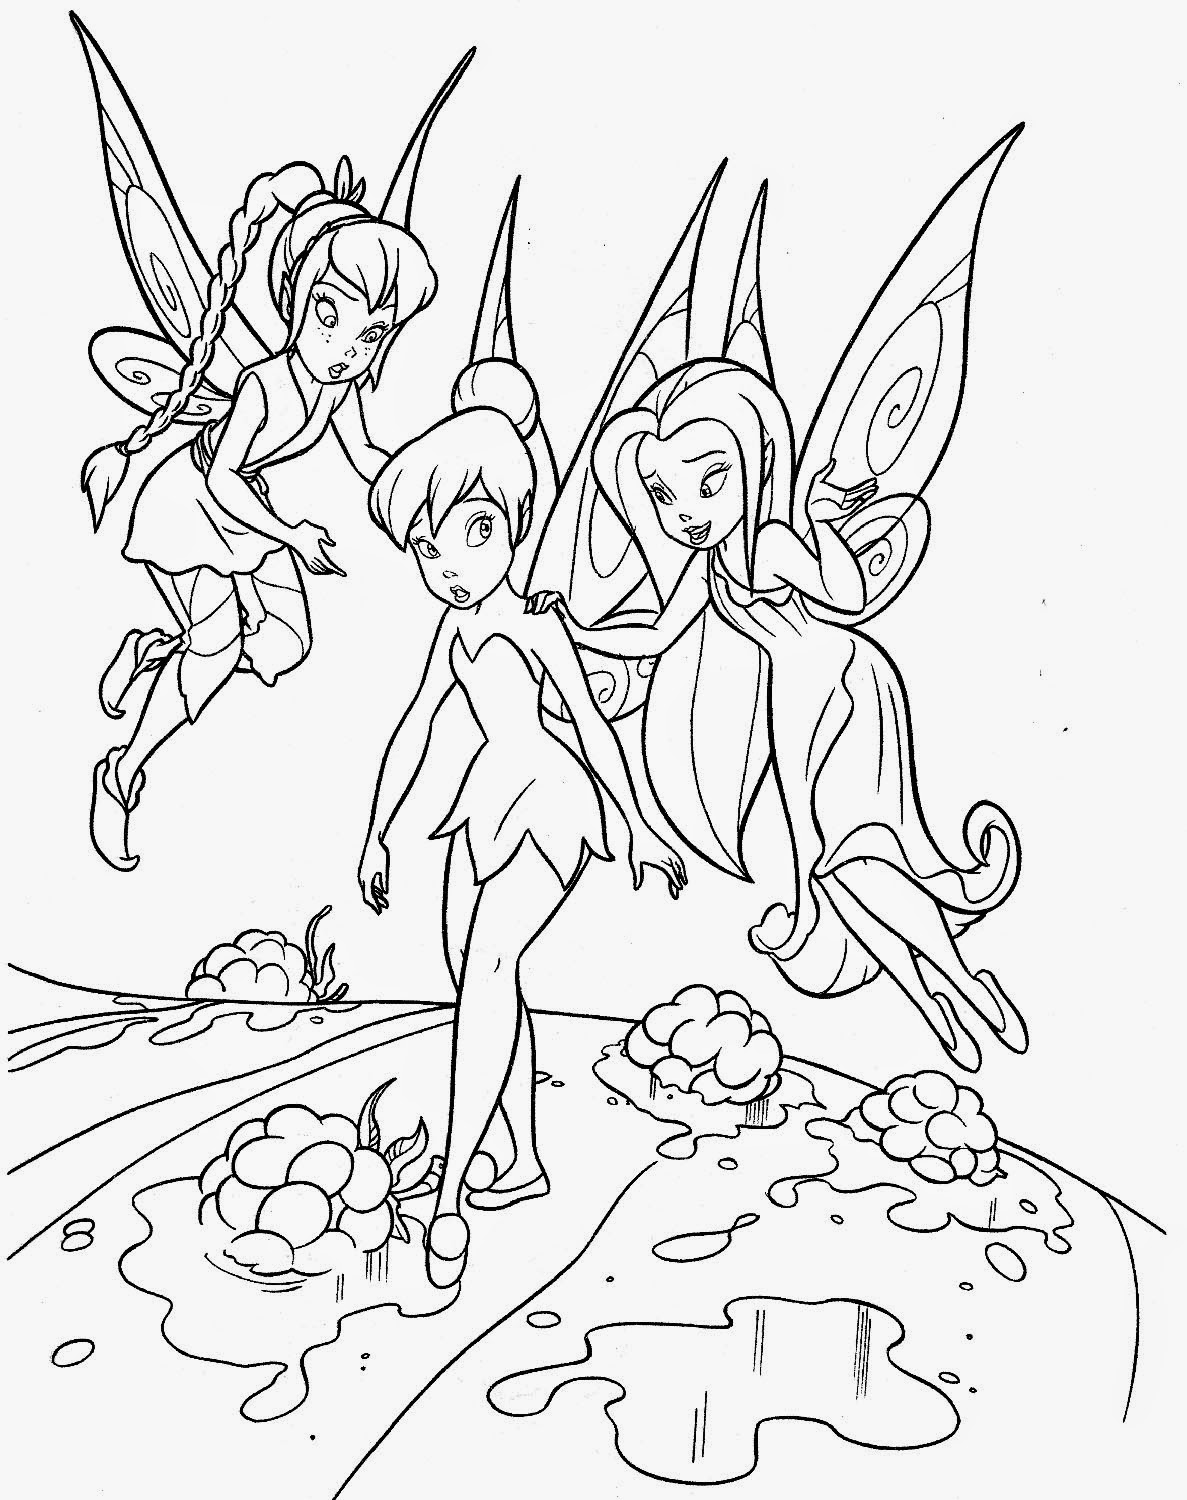 tinkerbell coloring pages free printable coloring pages tinkerbell coloring pages and clip art printable coloring tinkerbell free pages